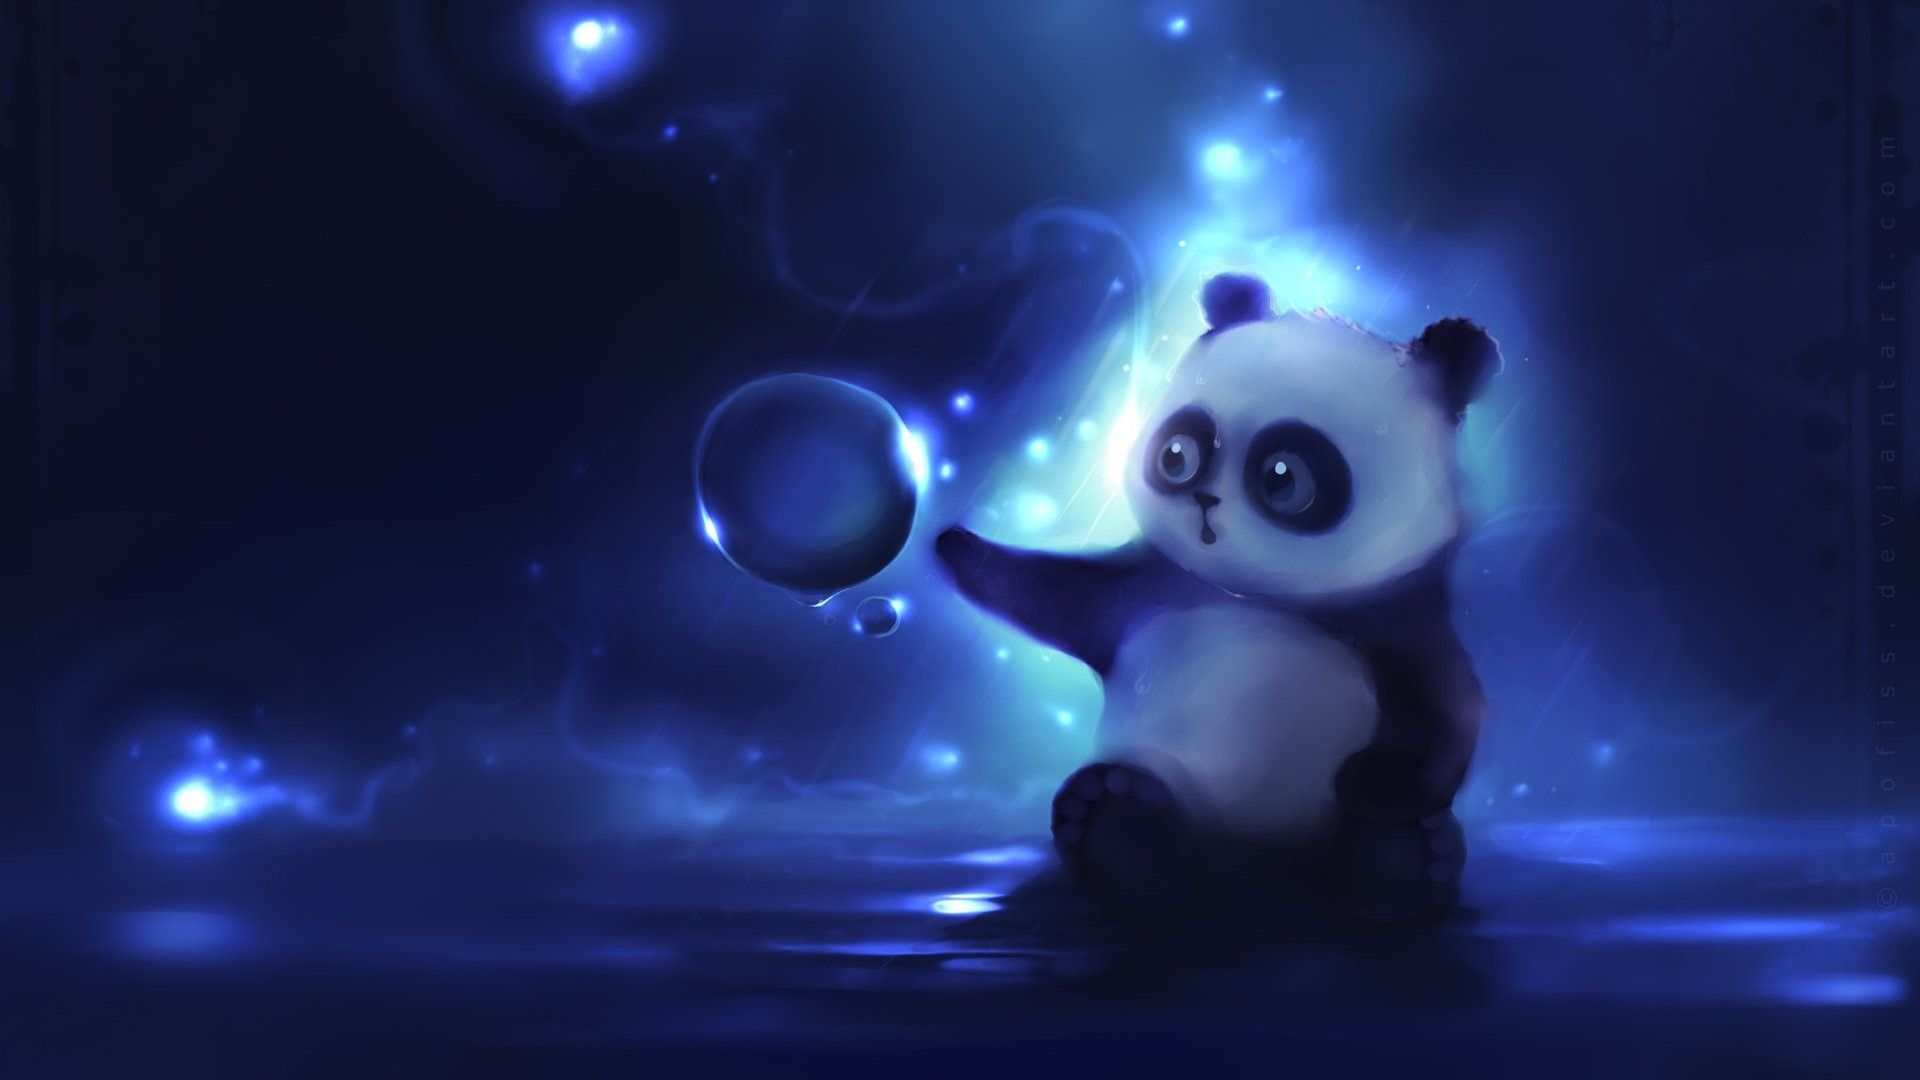 Cute Anime Animals Wallpapers   Top Cute Anime Animals 1920x1080